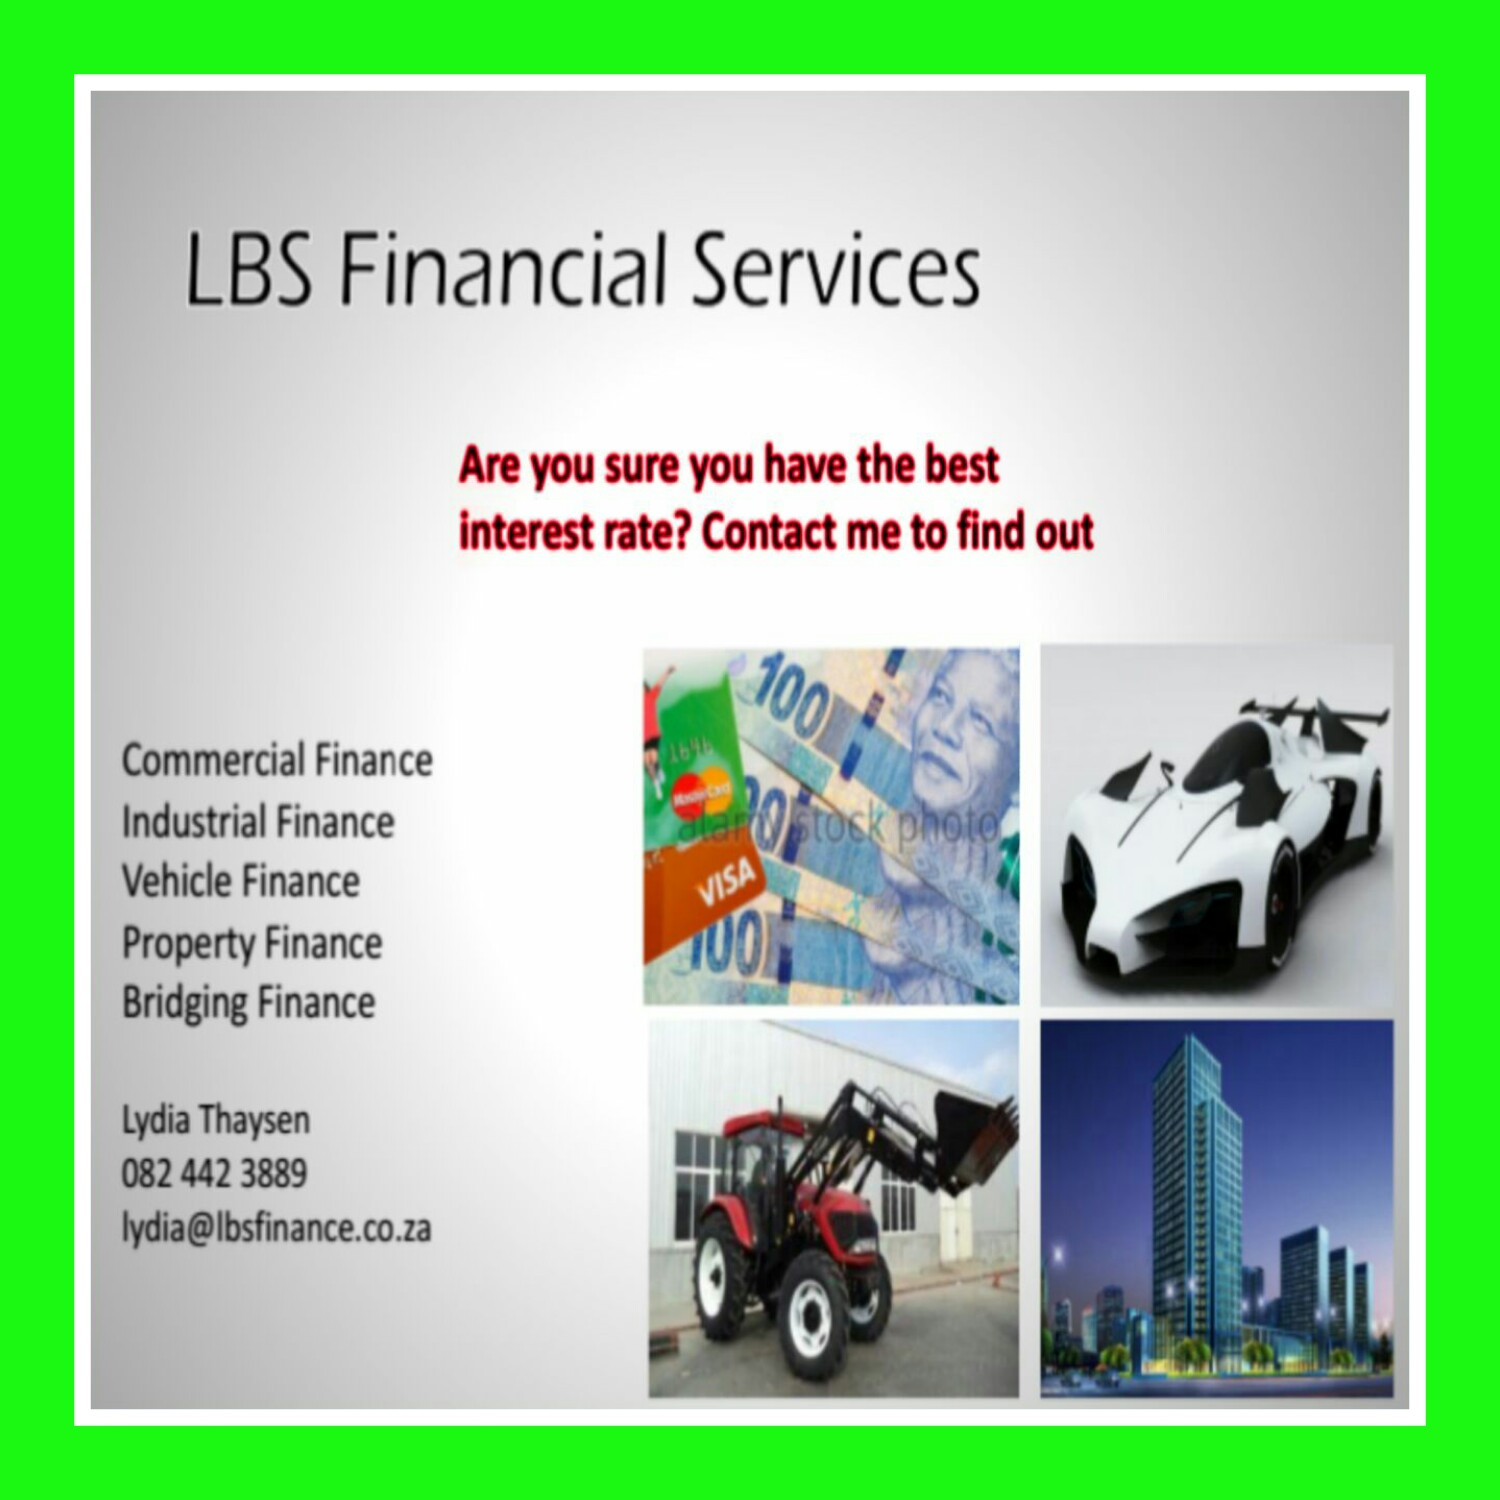 Let us give you the BEST interest rate